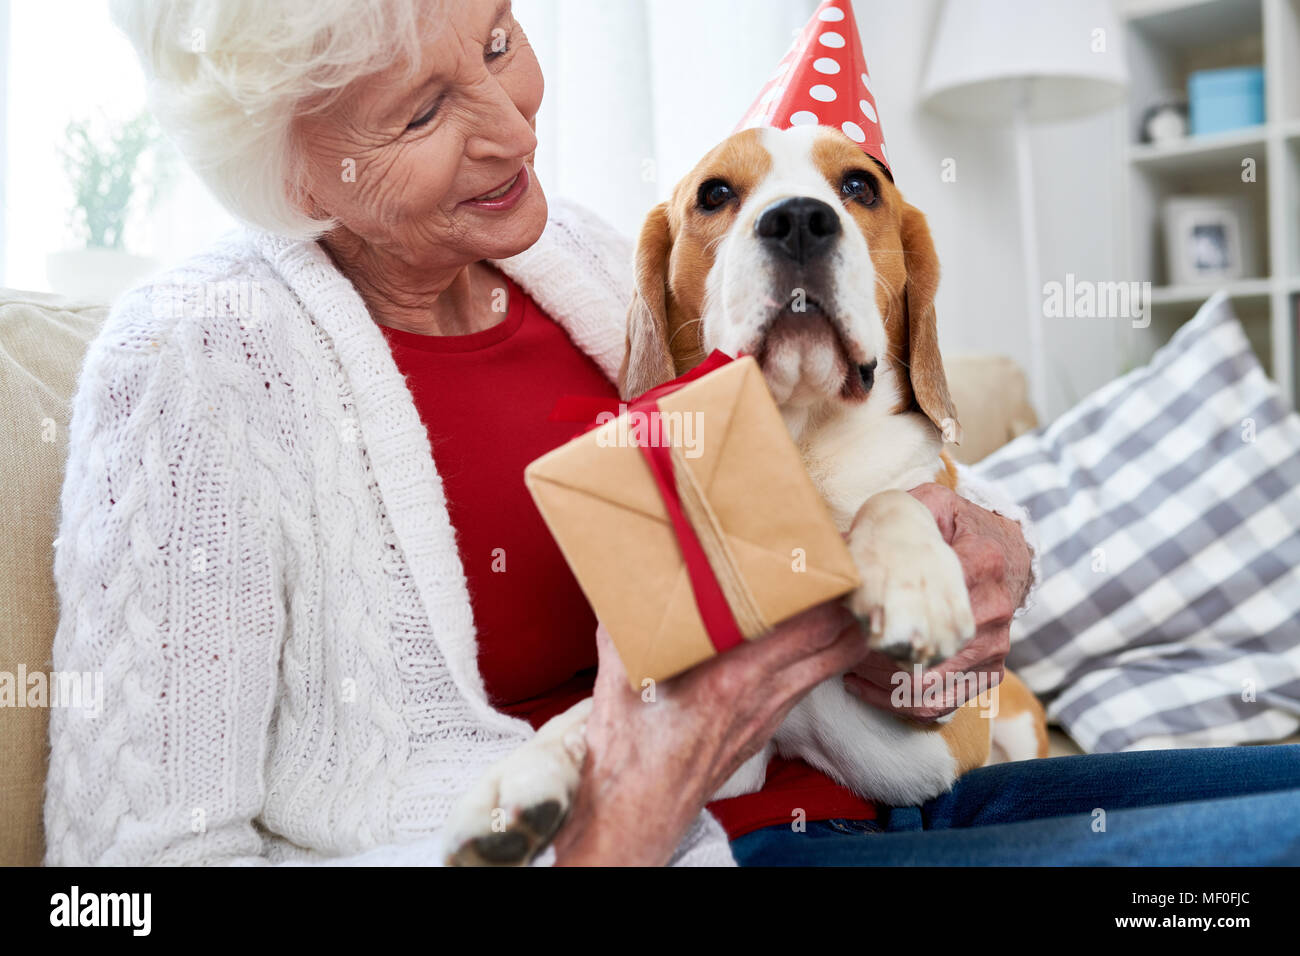 Dogs birthday - Stock Image